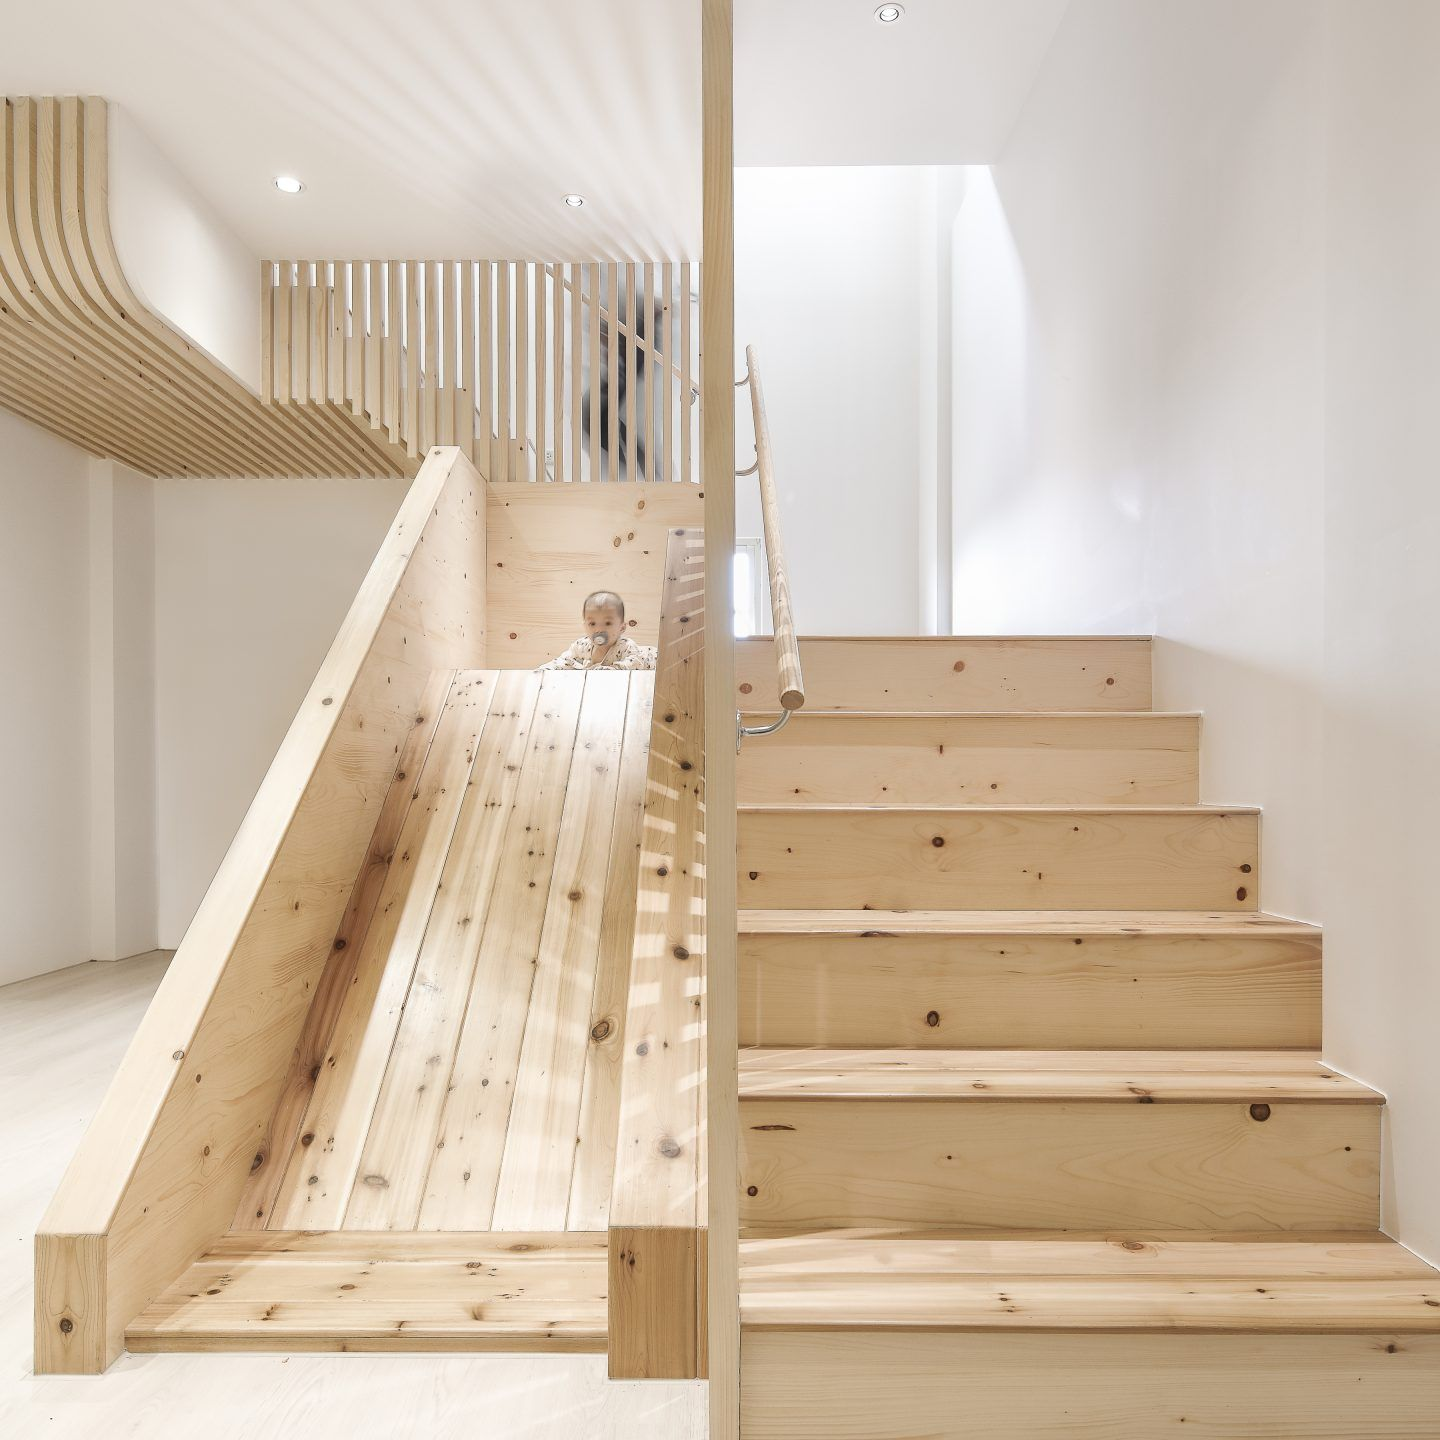 IGNANT-A-Design-Tienyuwu-Fun-House-1